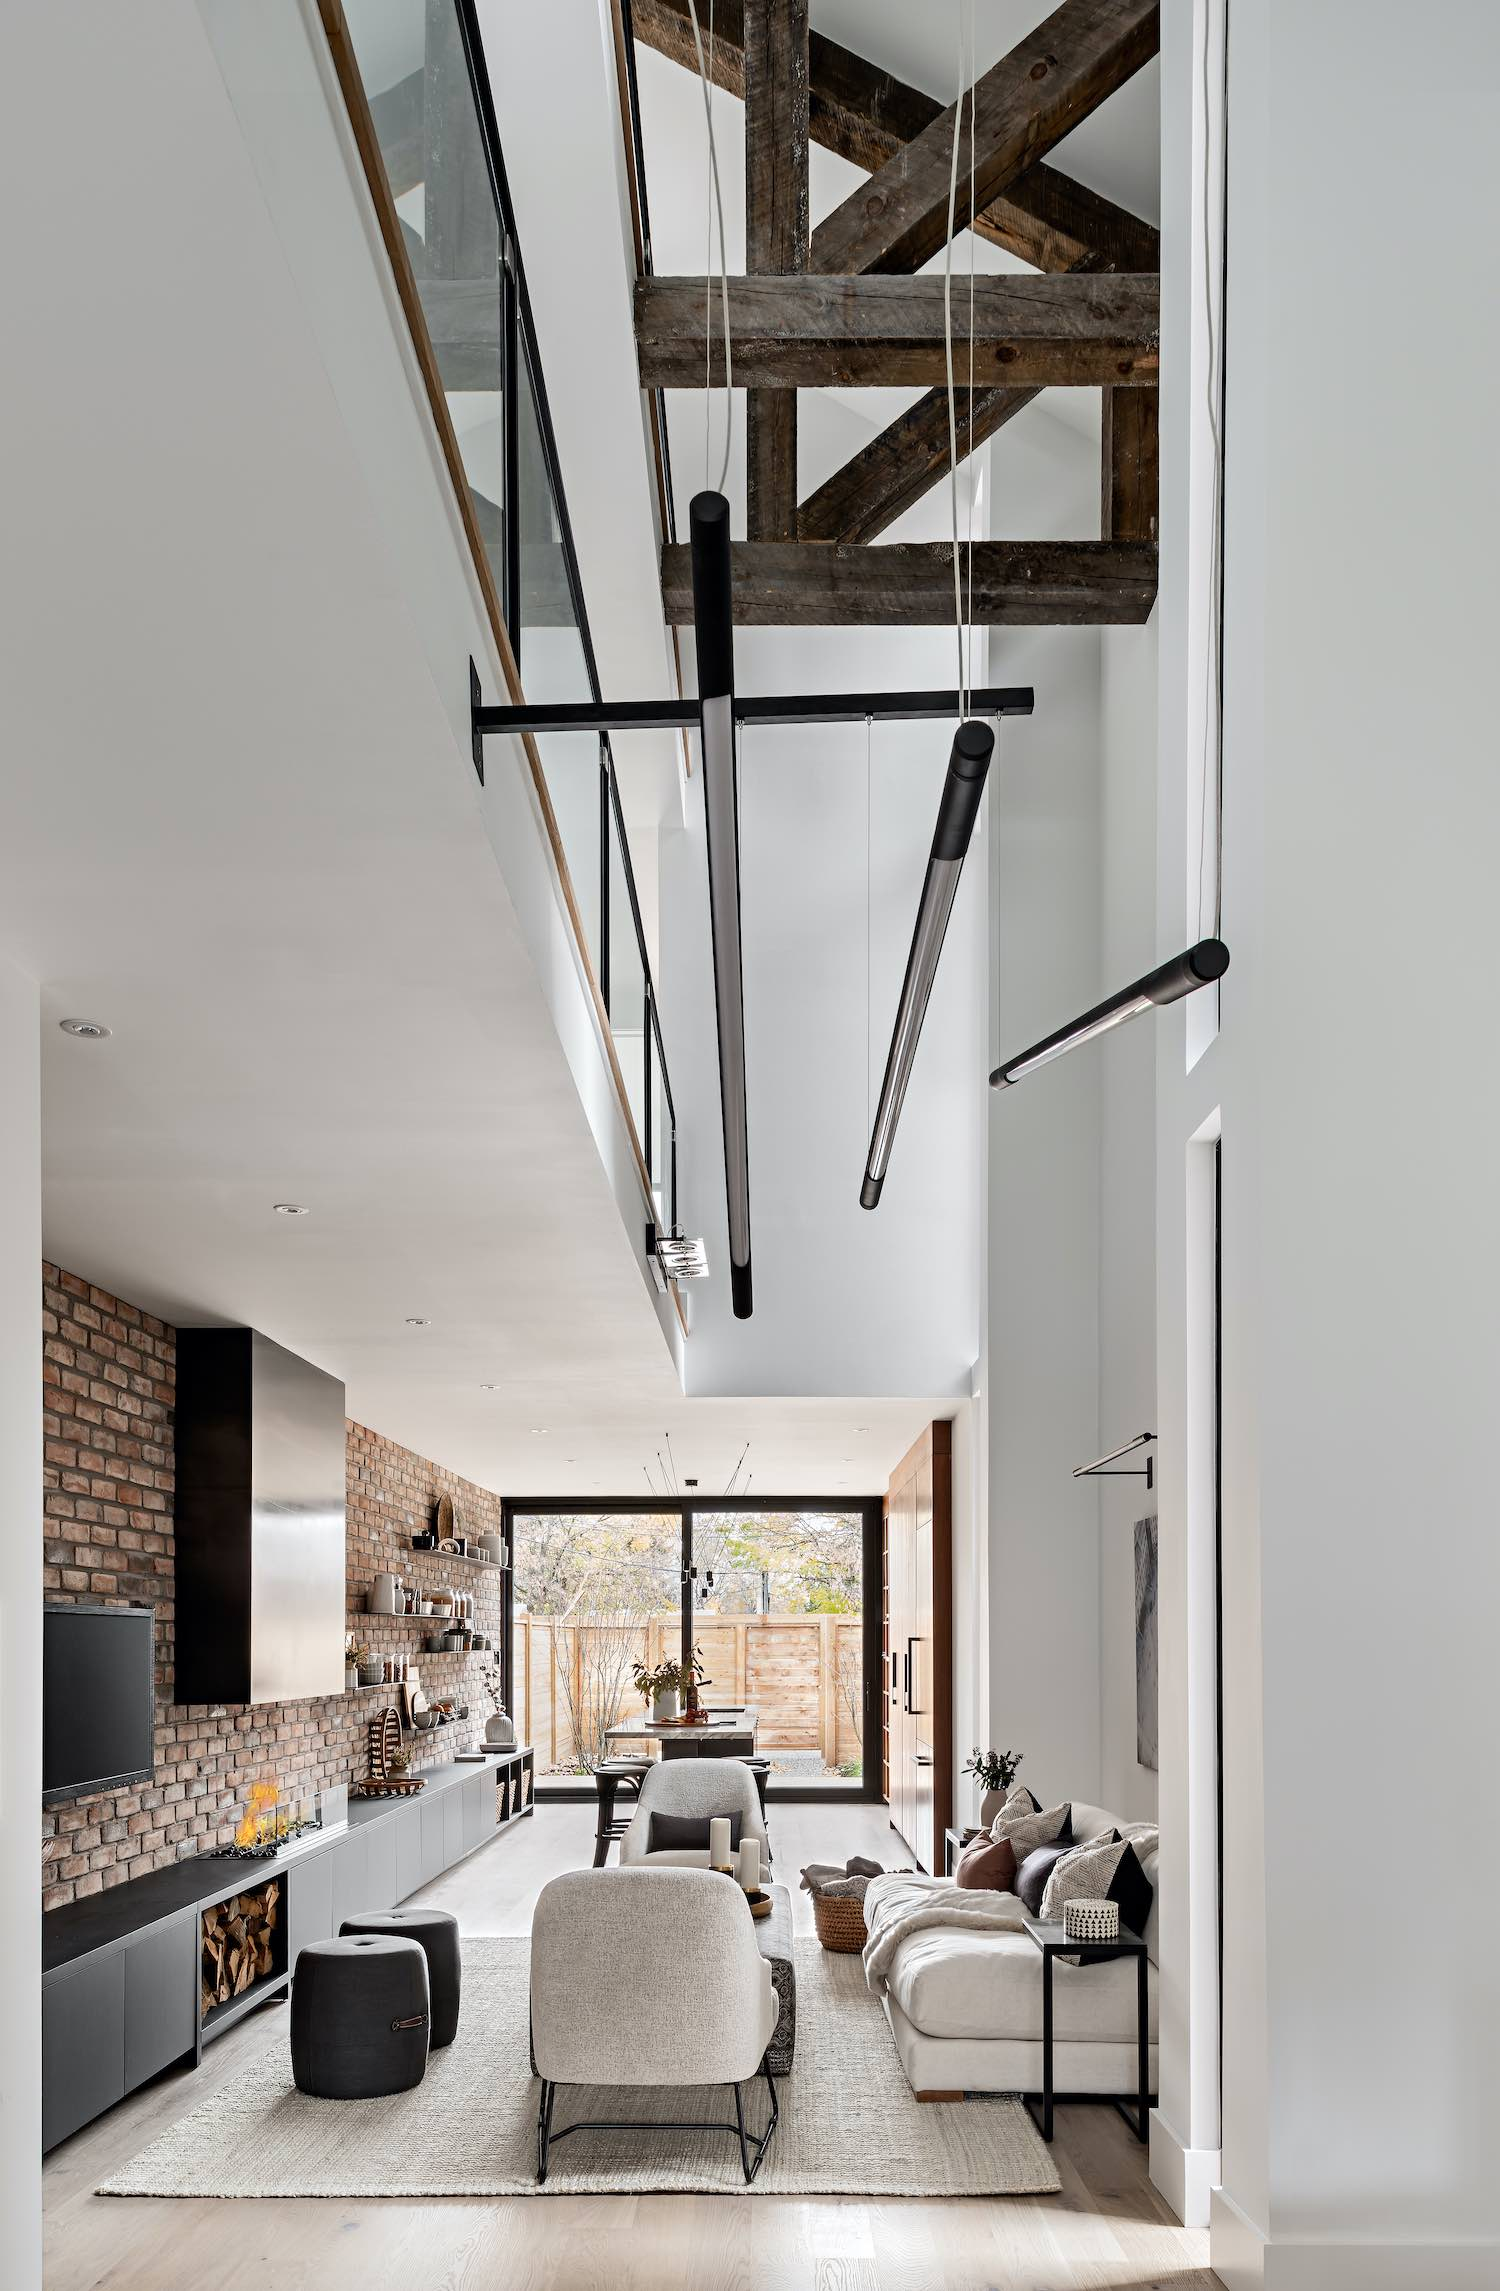 cozy living room with large windows and double volume roof